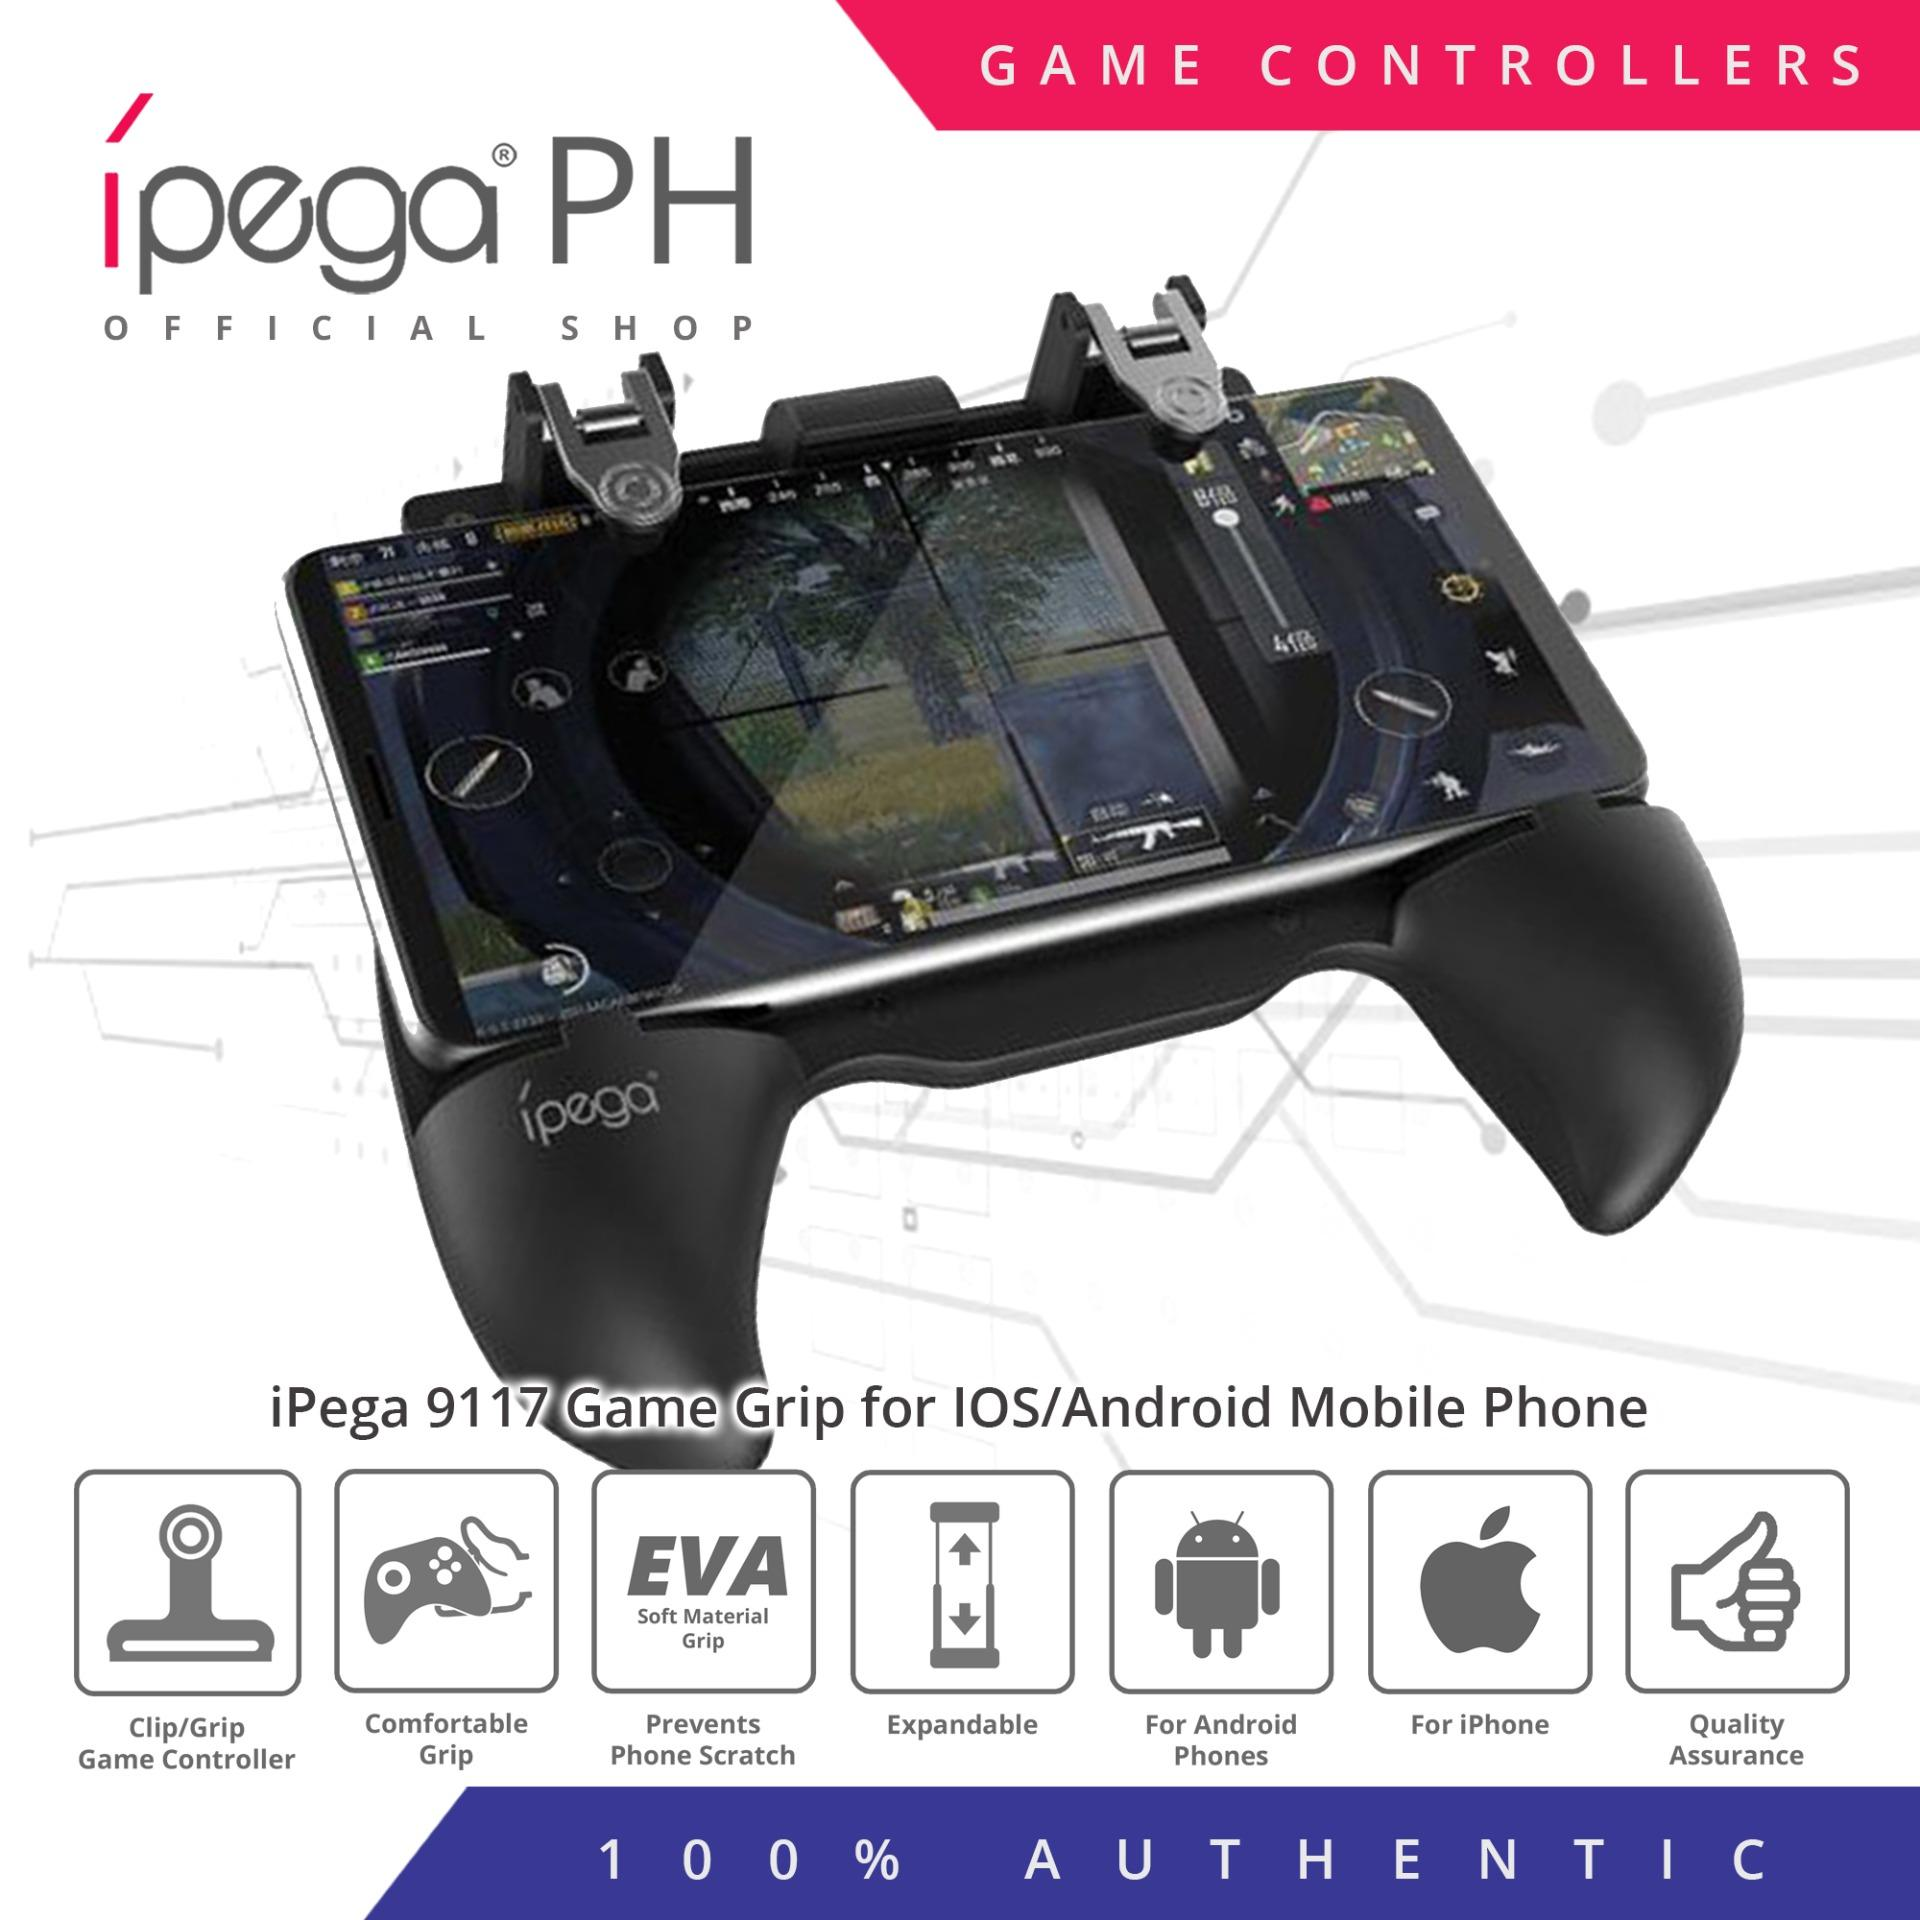 596d60a06 Gaming Accessories for sale - Video Game Accessories prices